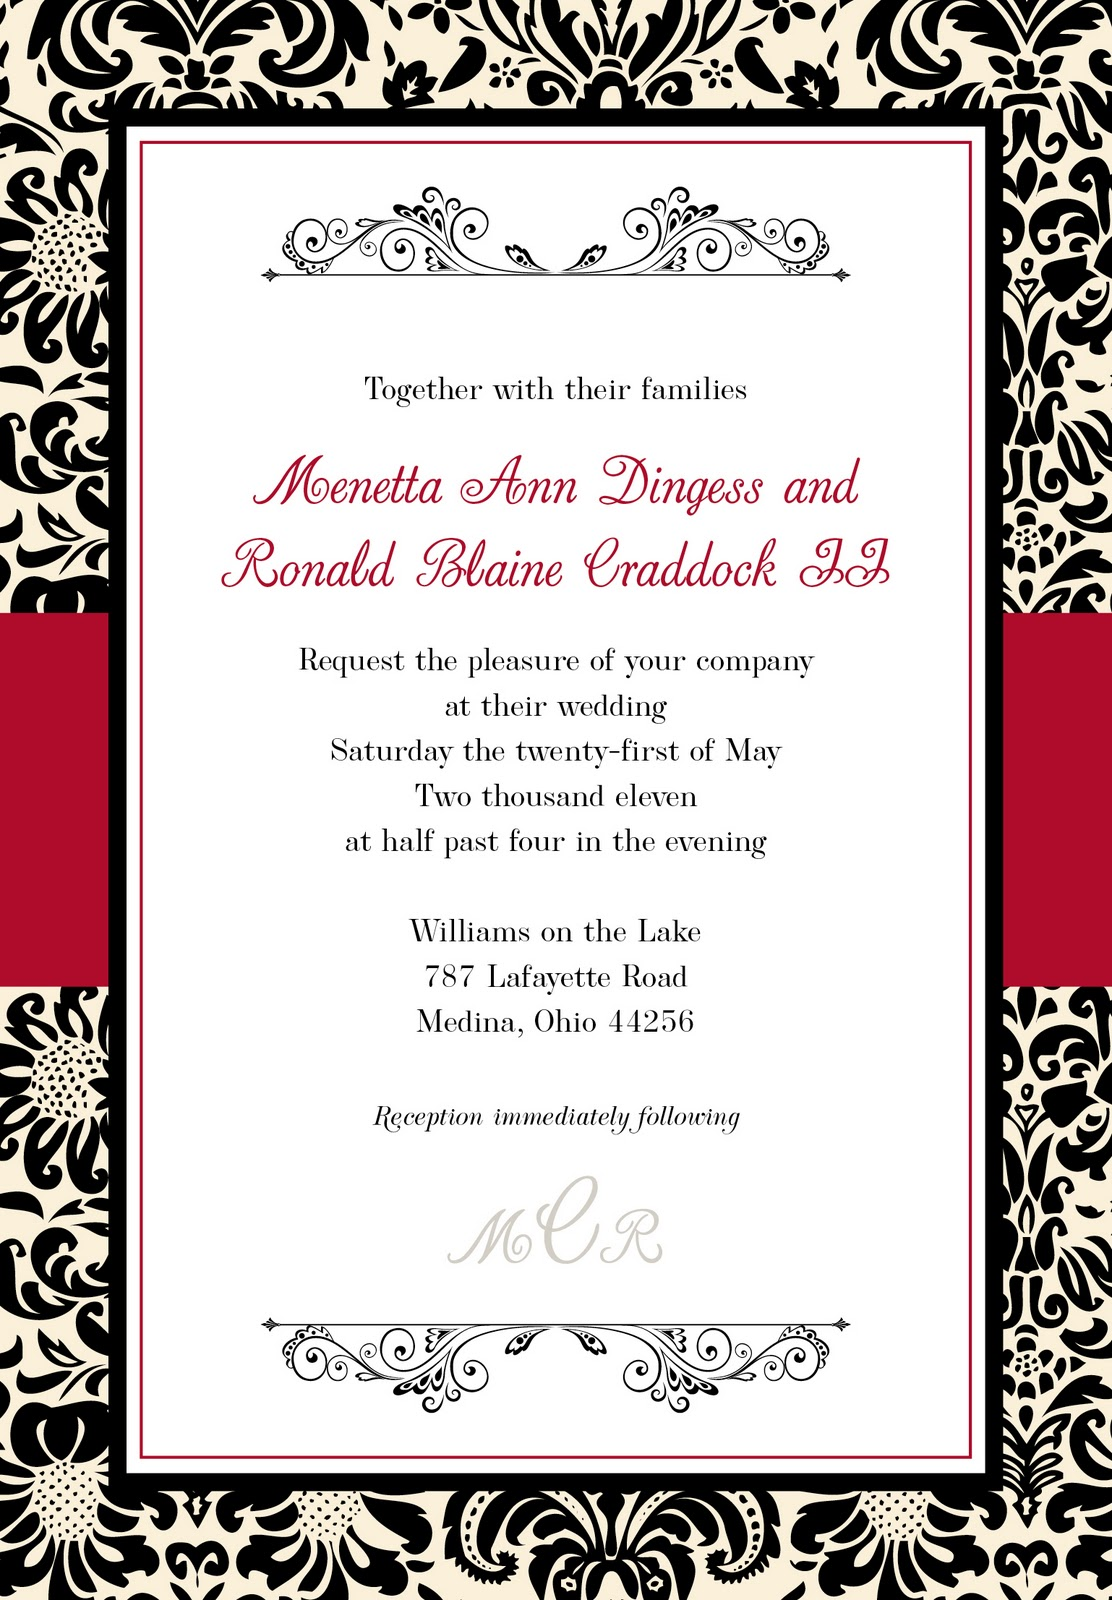 mkaydesigns: Black, Red, White and Ivory Damask Invitation